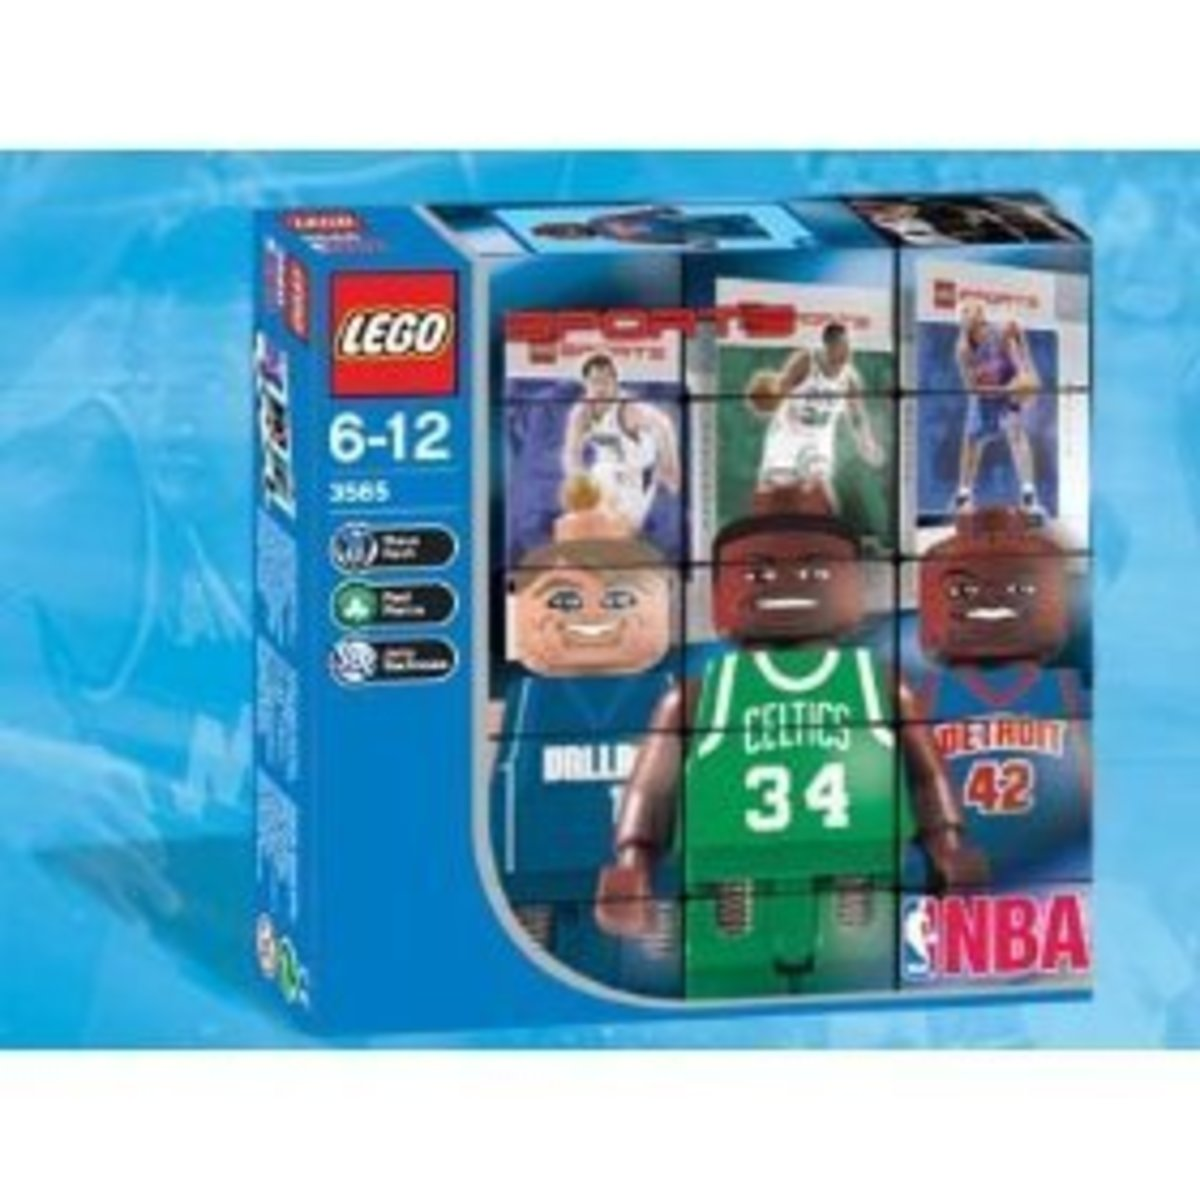 Lego NBA Collector Set #6 in its box